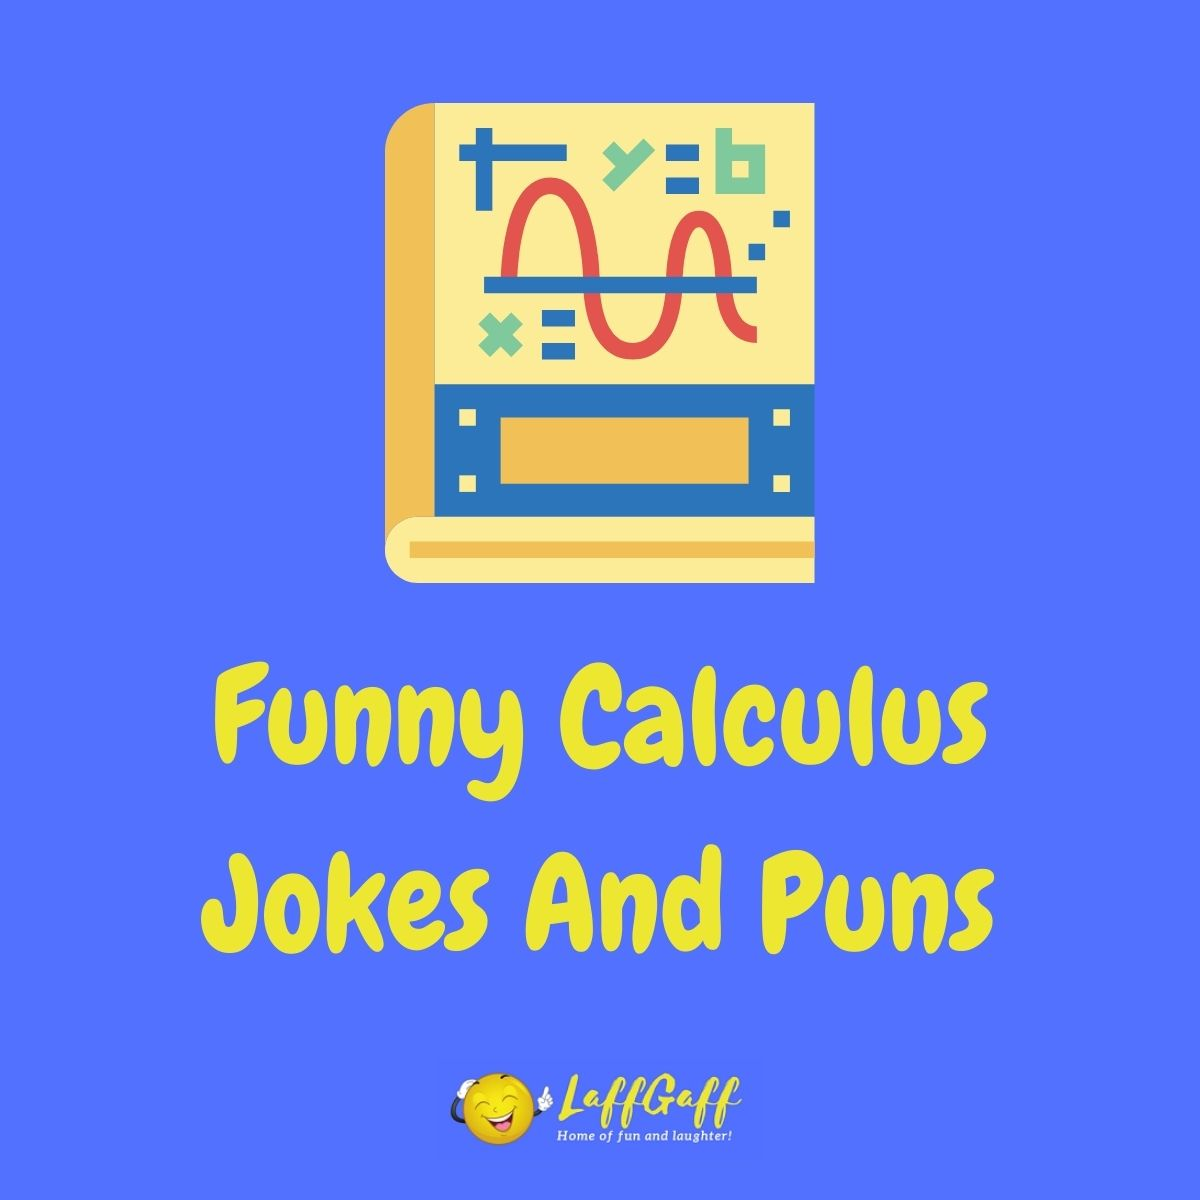 Featured image for a page of funny calculus jokes and puns.